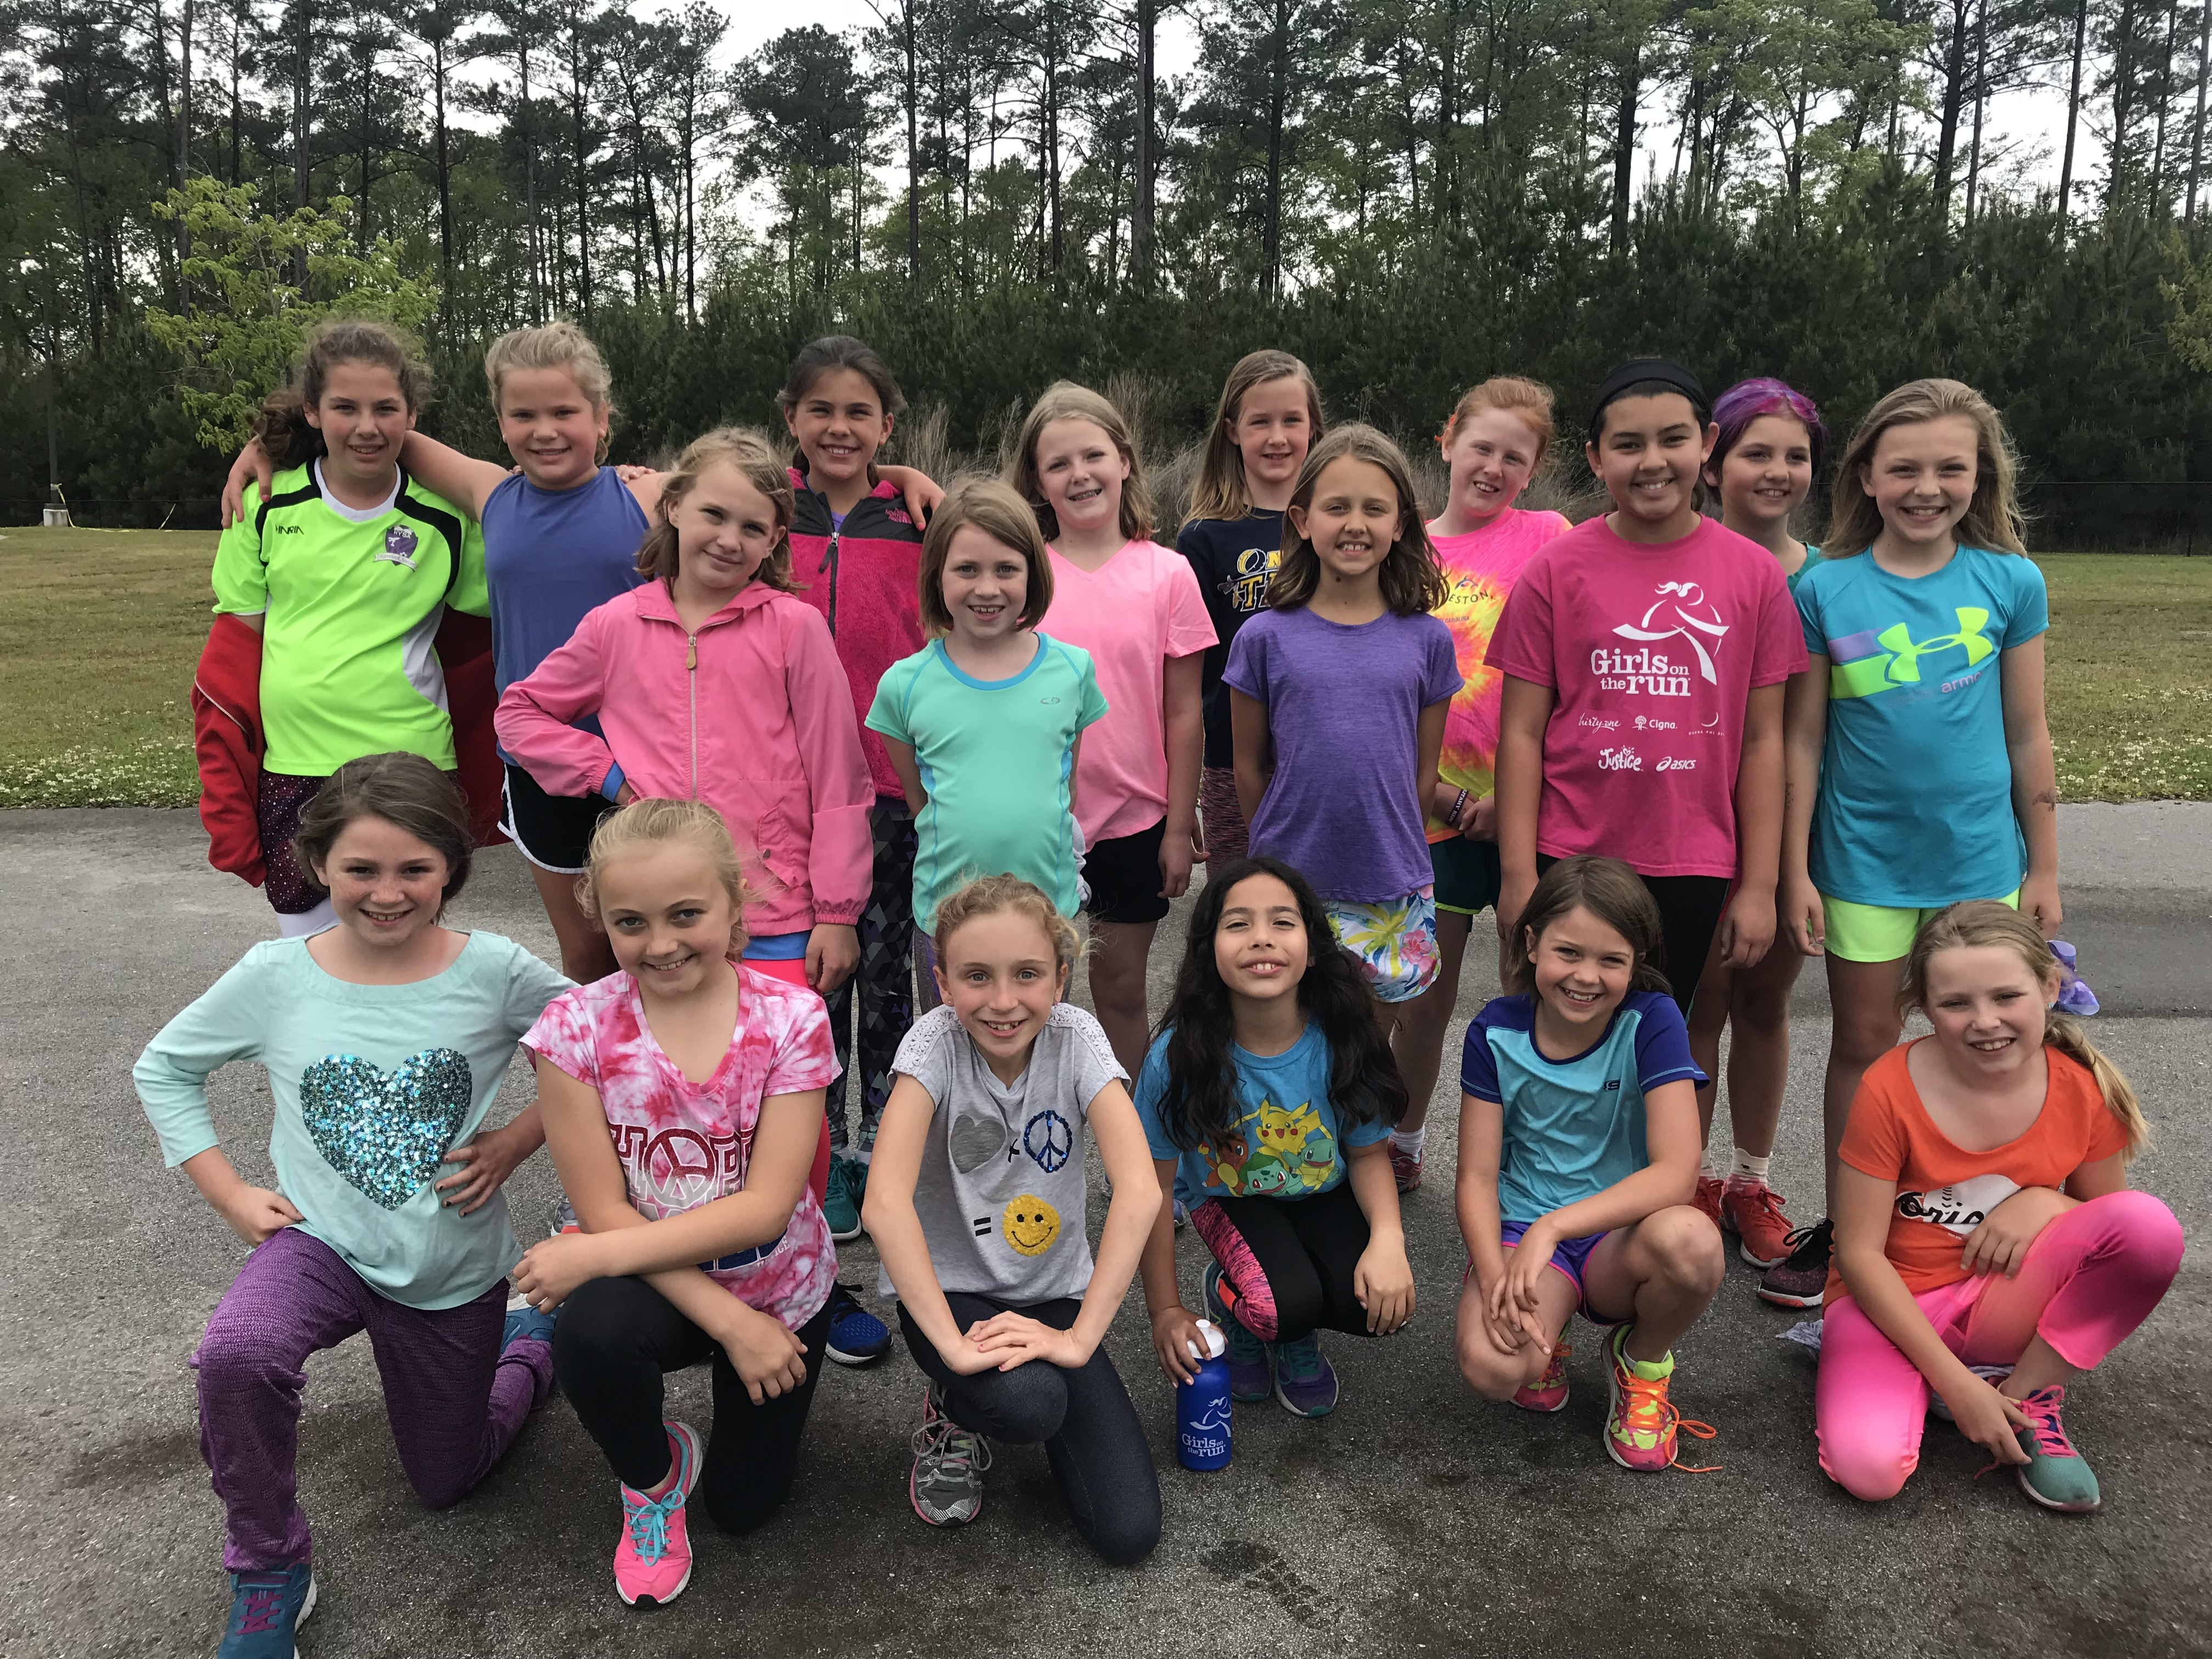 The Girls on the Run team consisted of 3rd-5th grade girls.